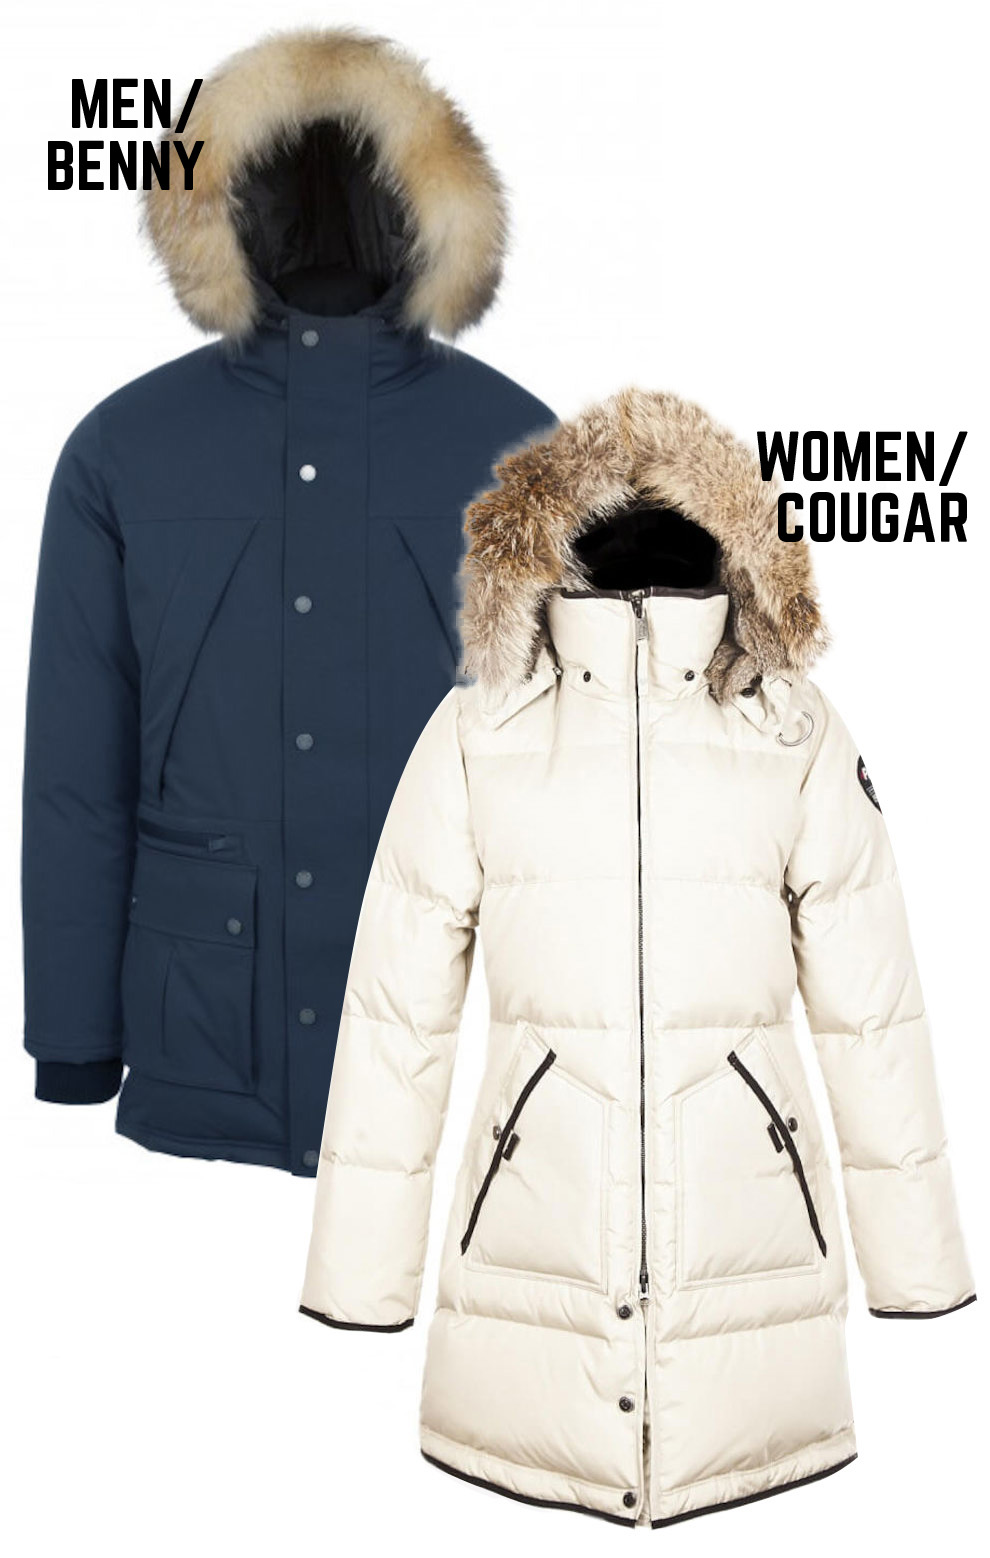 Pajar insulated jackets